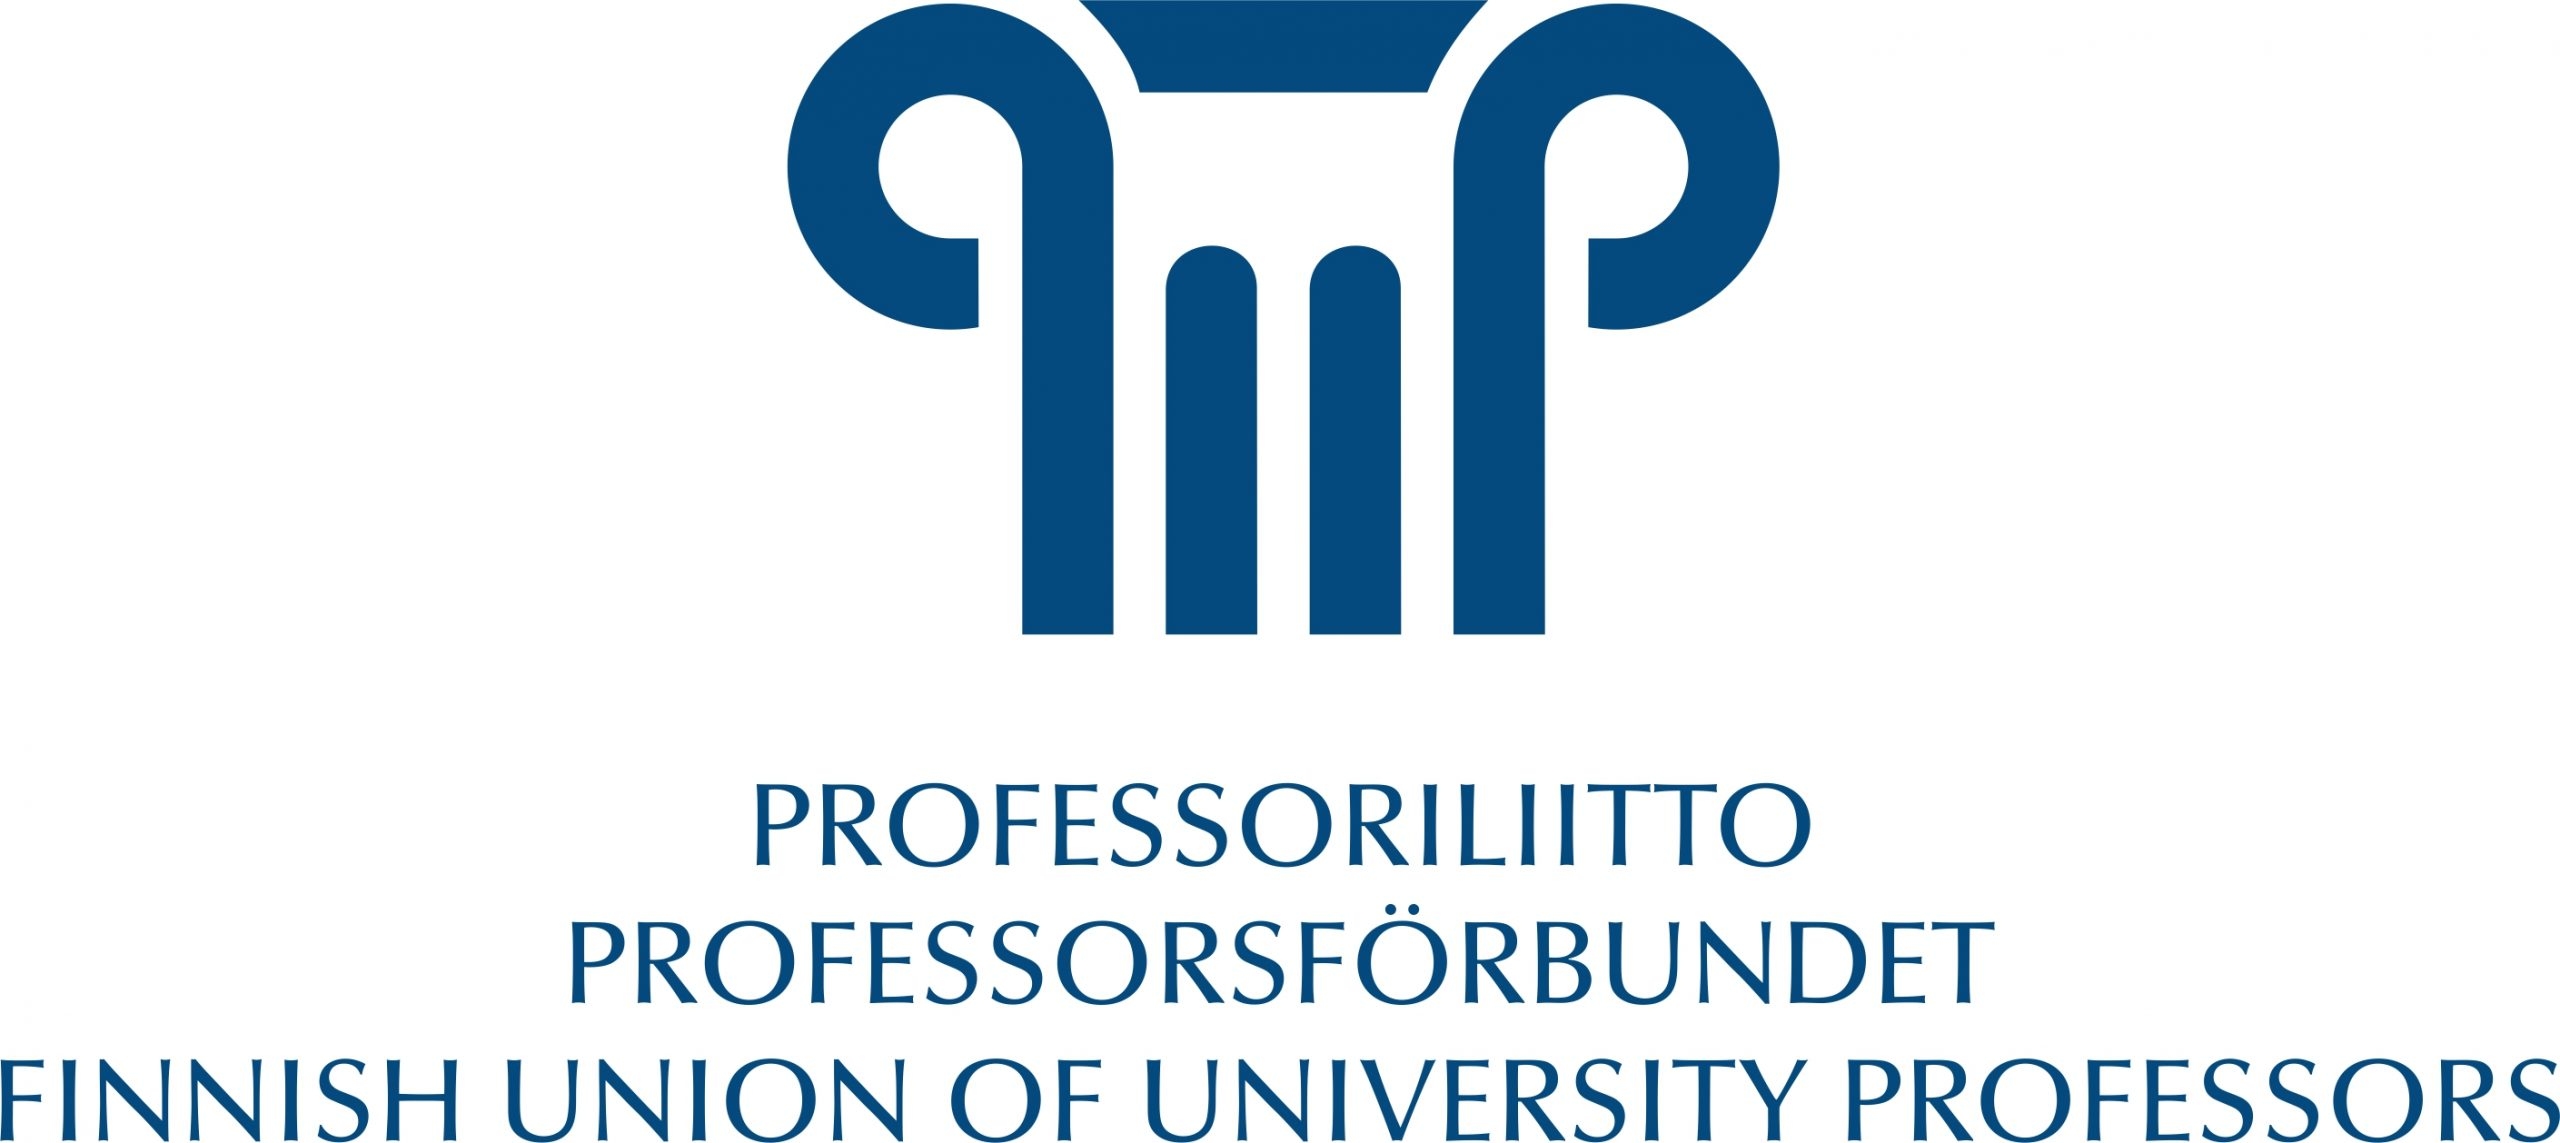 professoriliitto_logo_rgb-jpeg